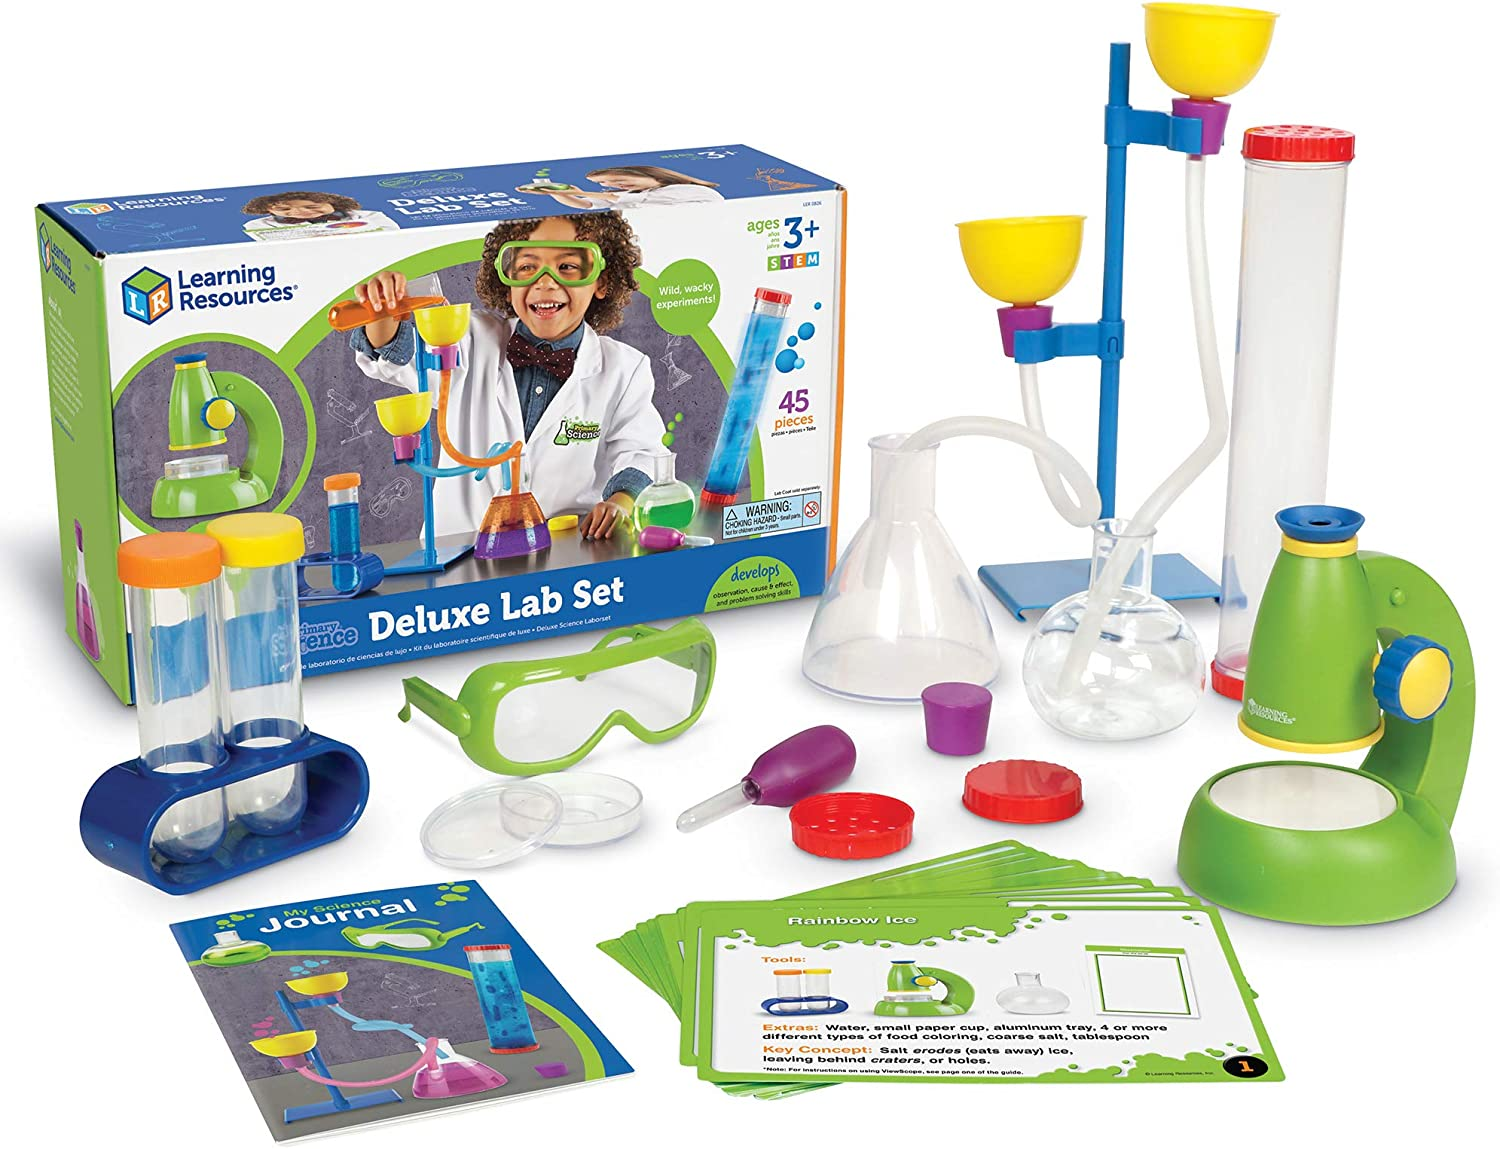 Learning Resources Primary Science Deluxe Lab Set, Science Kit, 45 Piece Set, Ages 3+